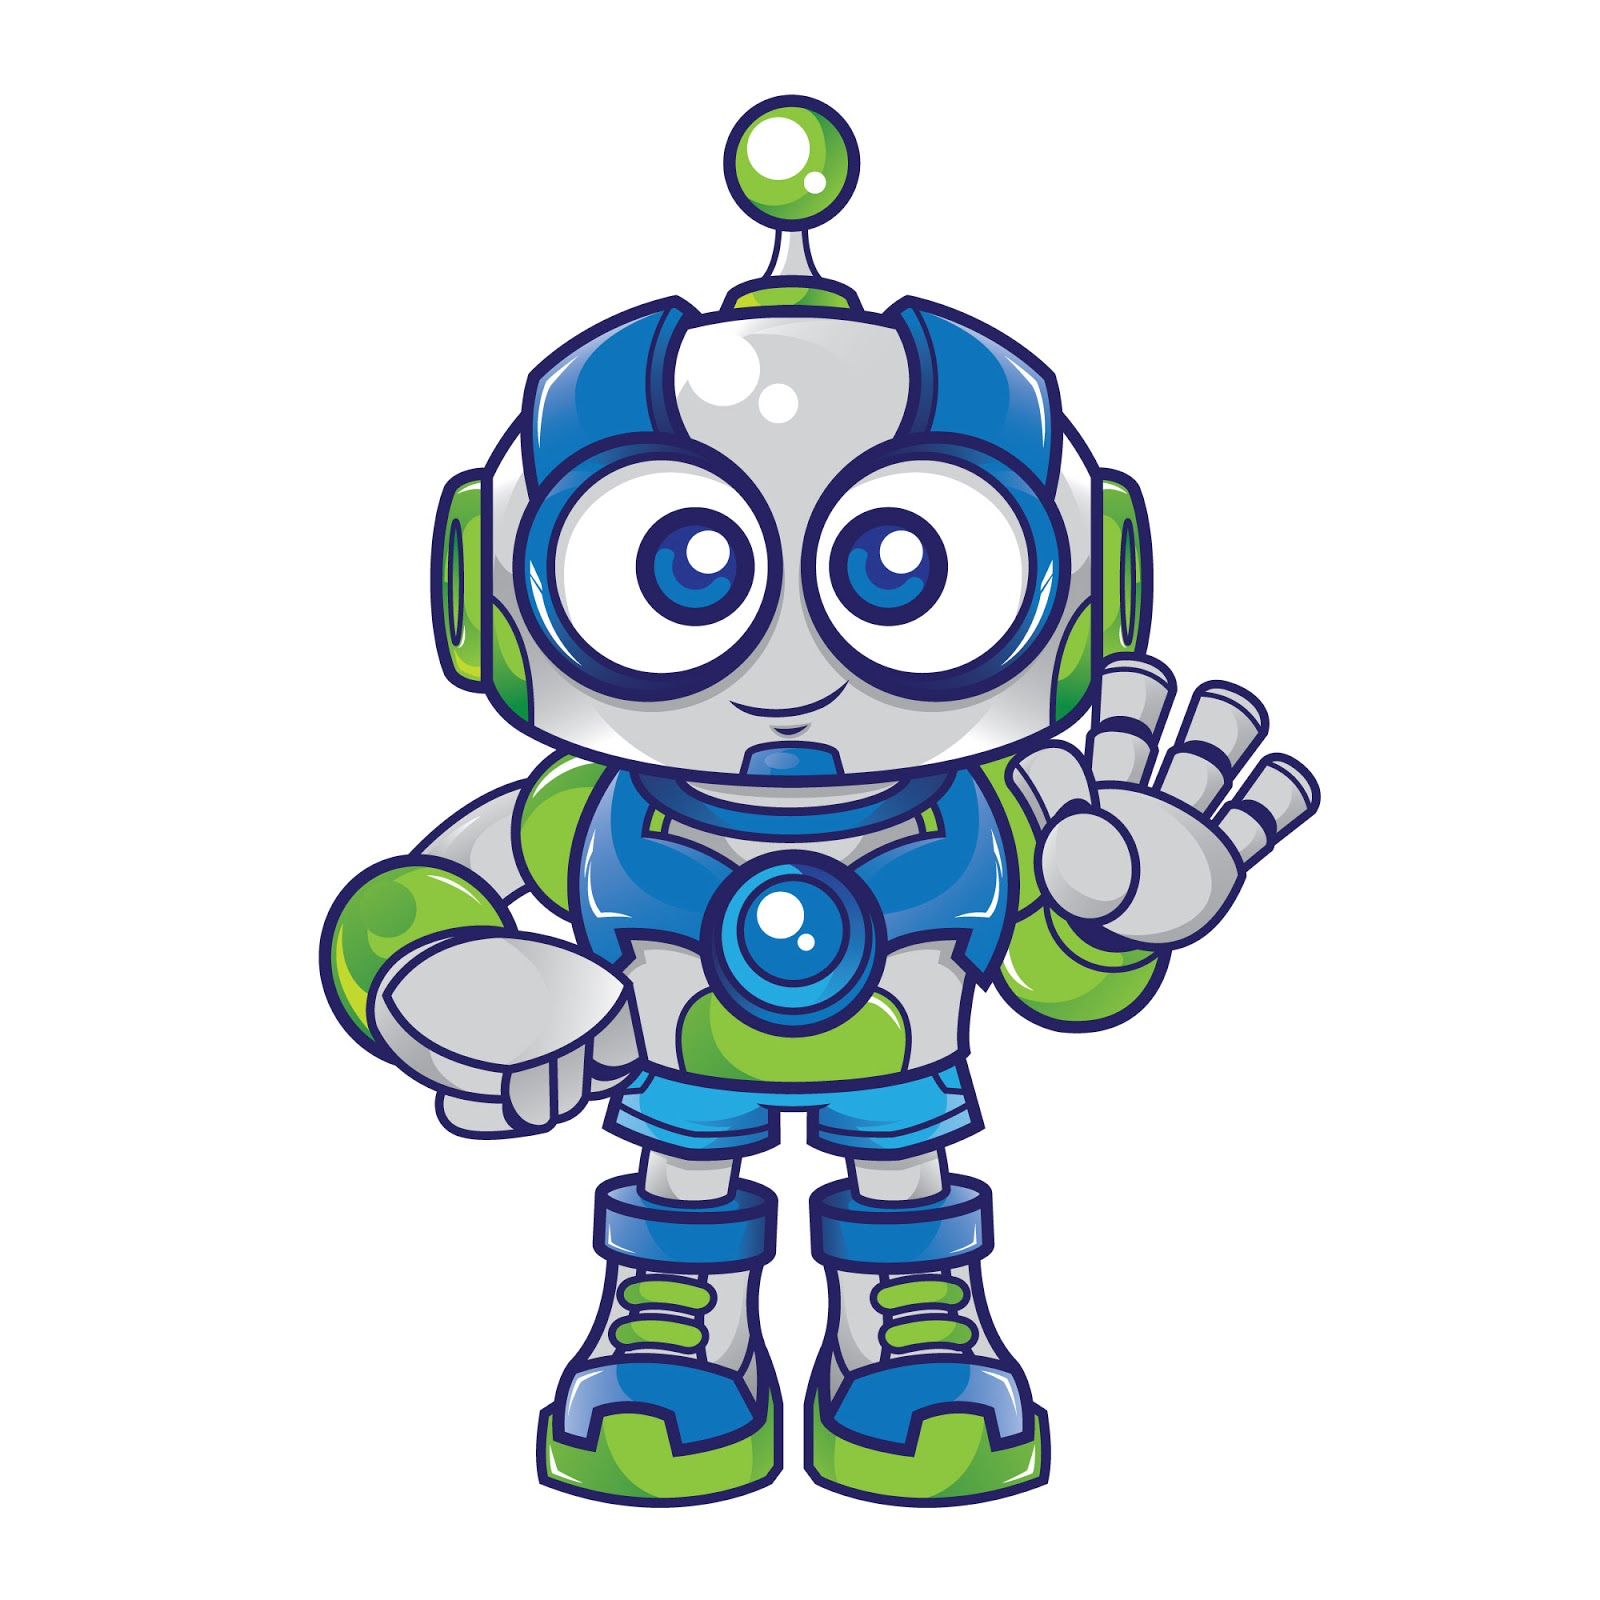 Robot Mascot Character Free Download Vector CDR, AI, EPS and PNG Formats